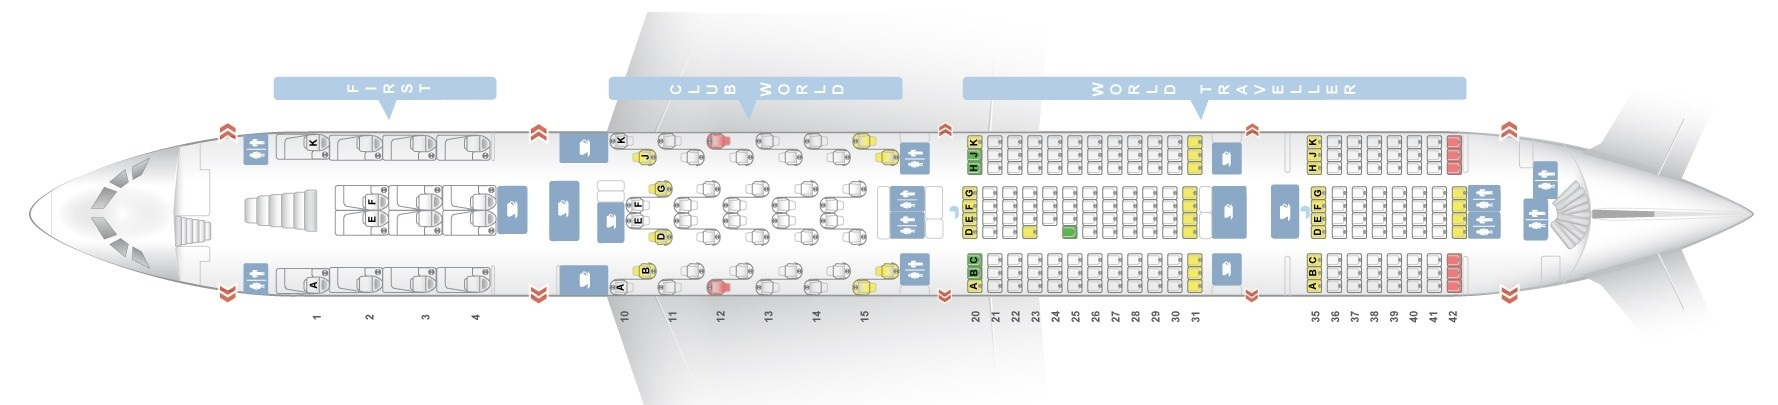 Seat Map Airbus A380 800 British Airways Best Seats In Plane